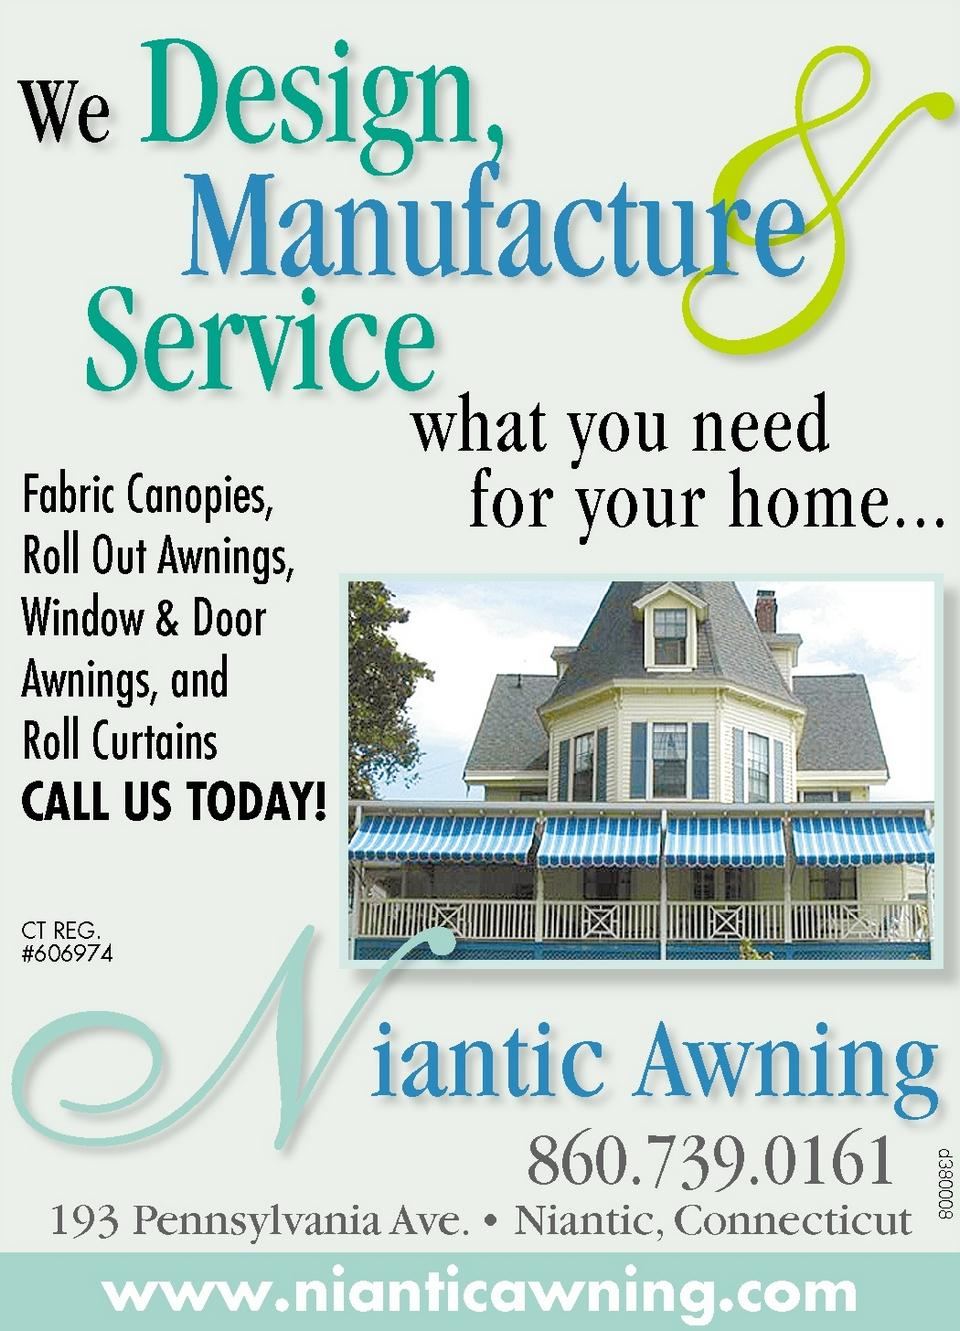 NIANTIC AWNING,   Ad Number: d00380008,  Publication Date: 10/17/2012